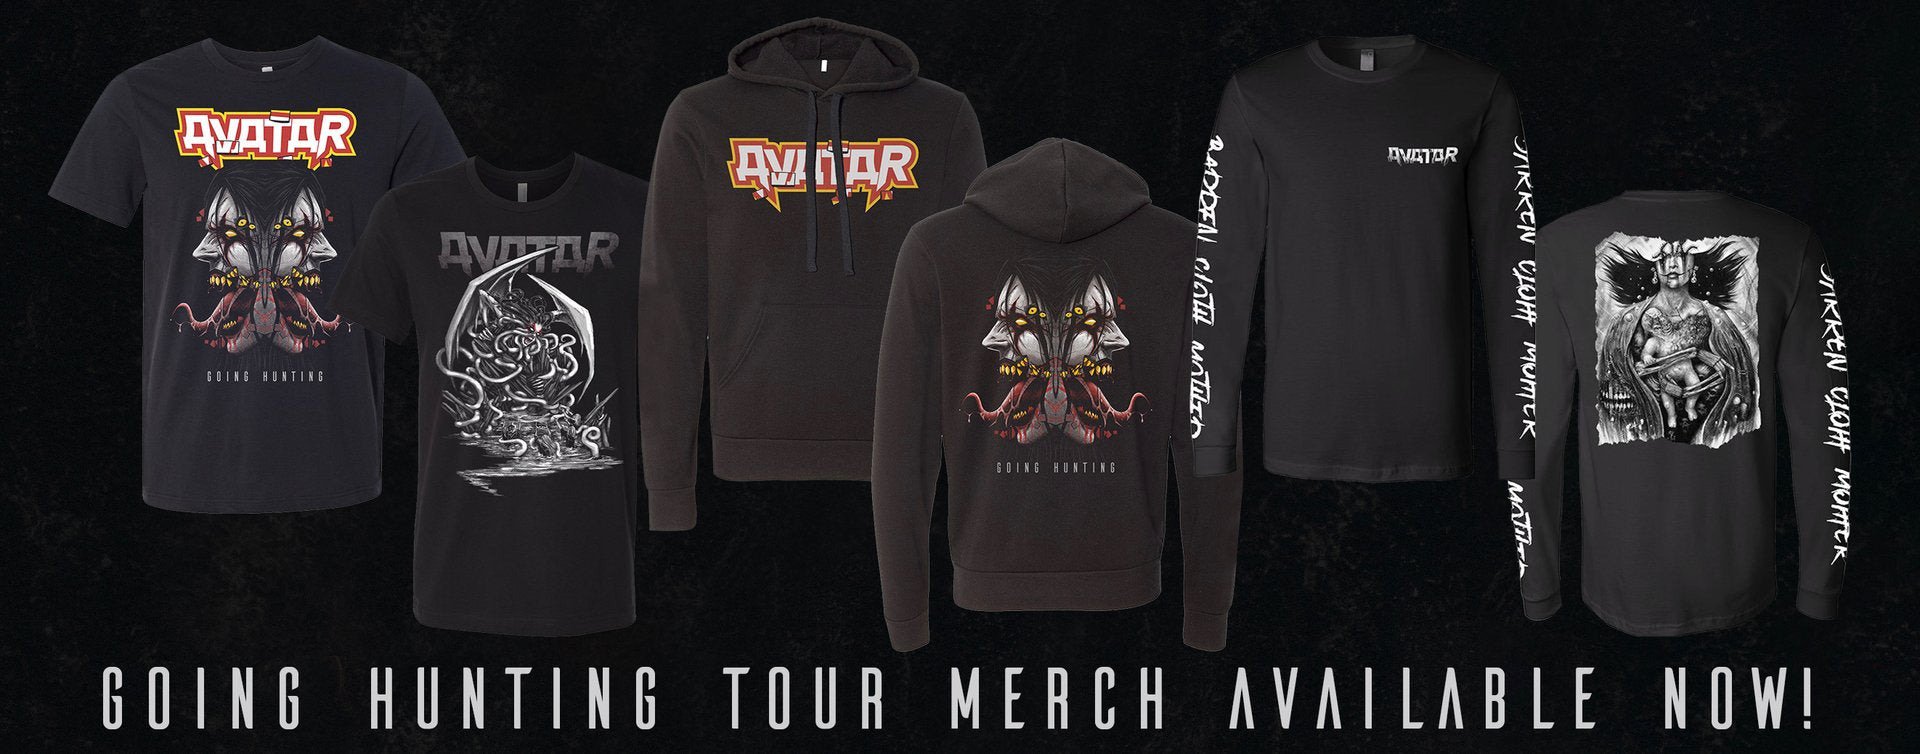 Fan Club Exclusive Vinyl!